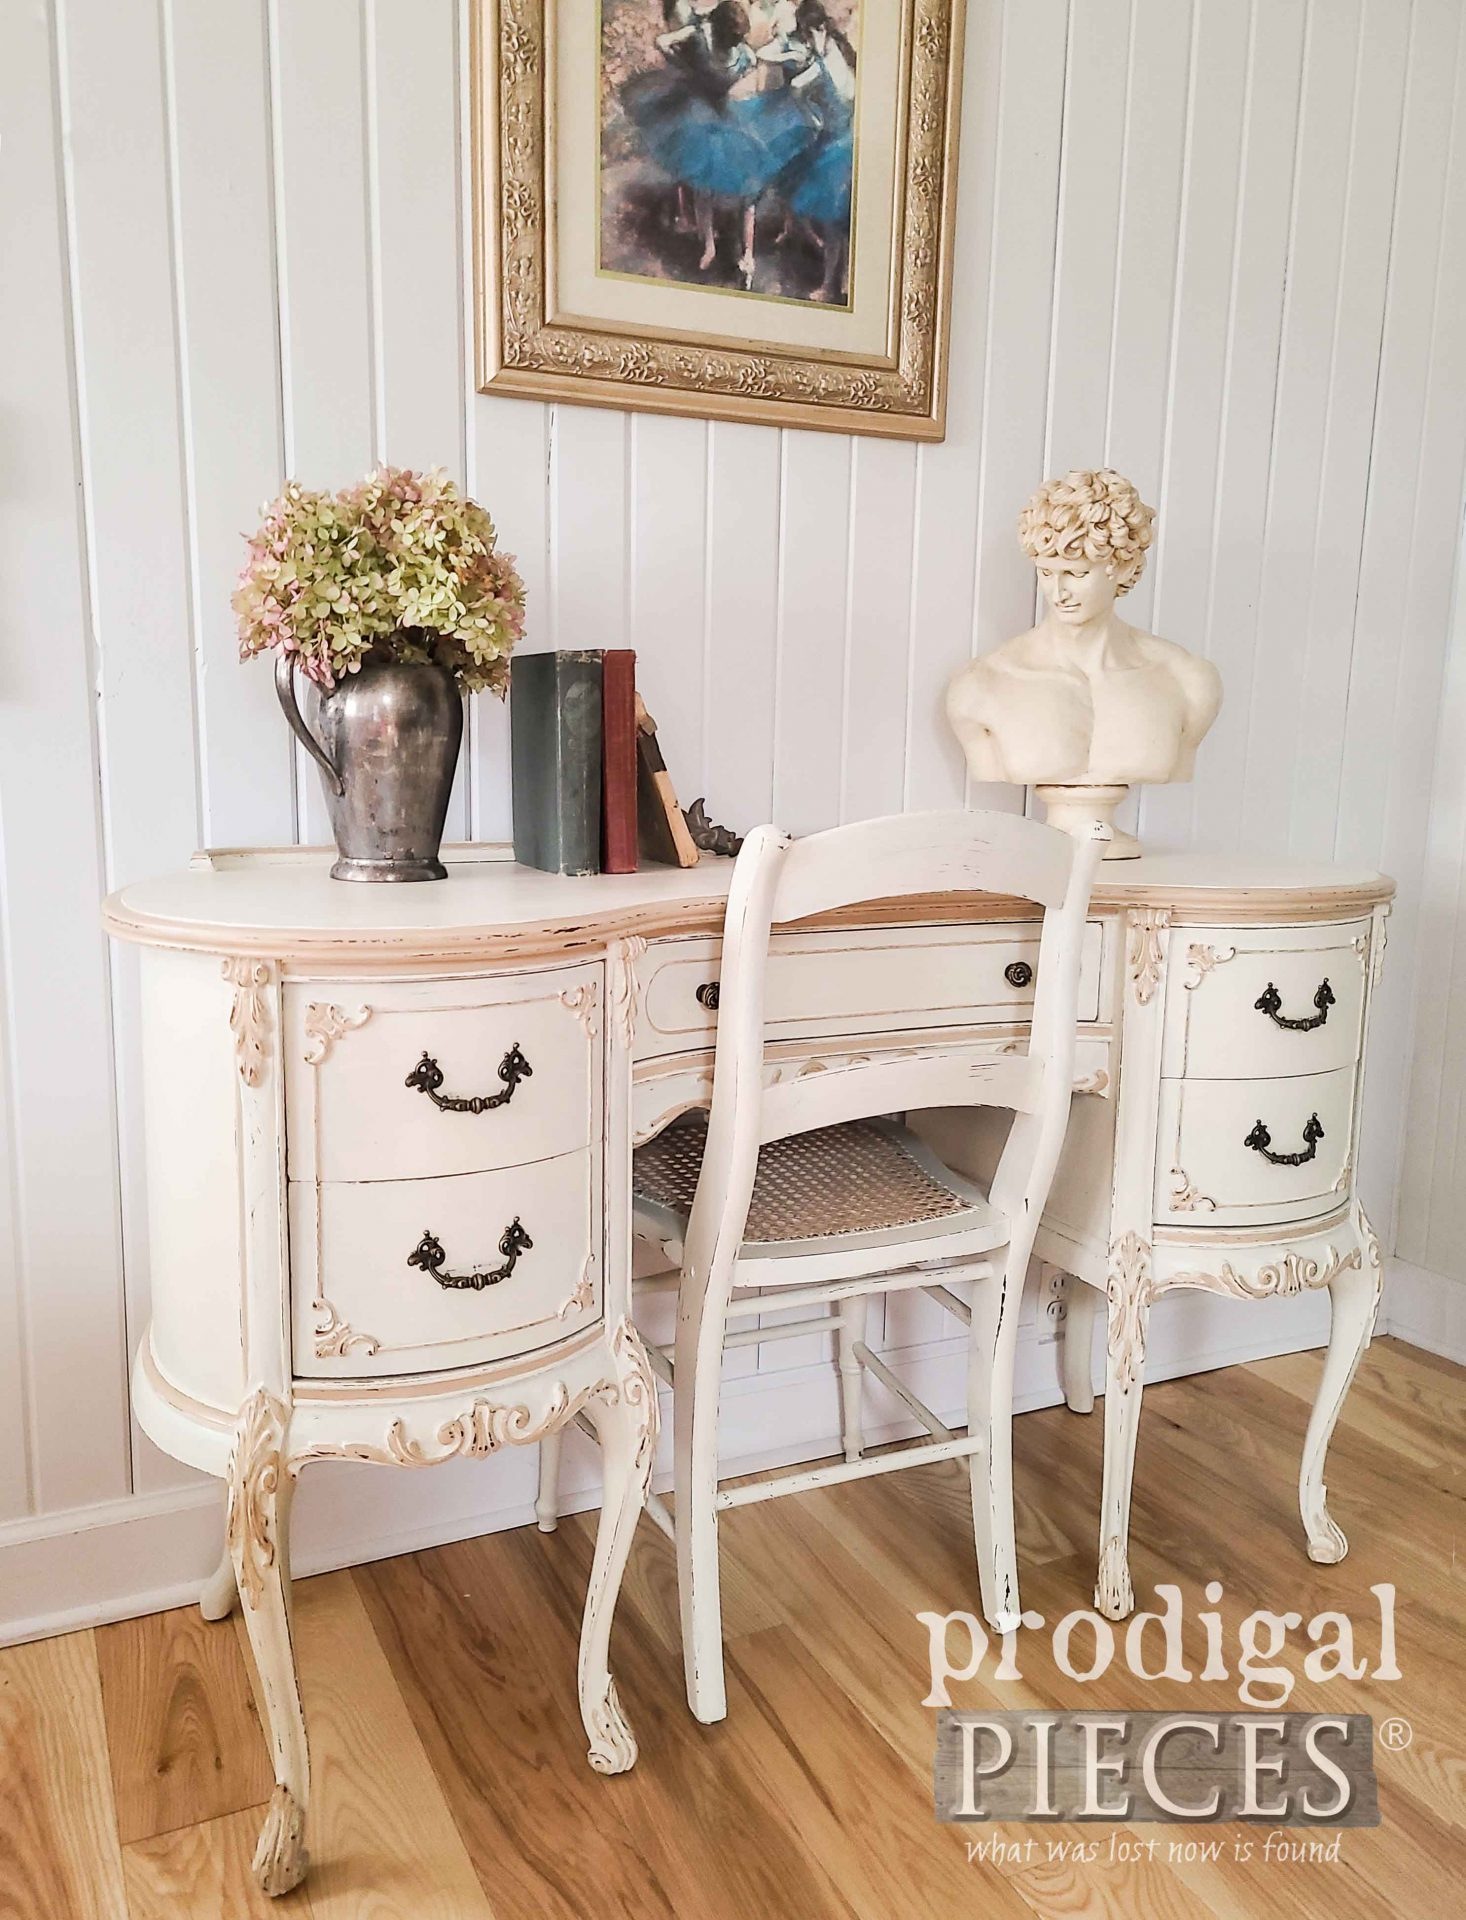 Antique White French Provincial Desk and Chair by Larissa of Prodigal Pieces | prodigalpieces.com #prodigalpieces #vintage #desk #furniture #home #homedecor